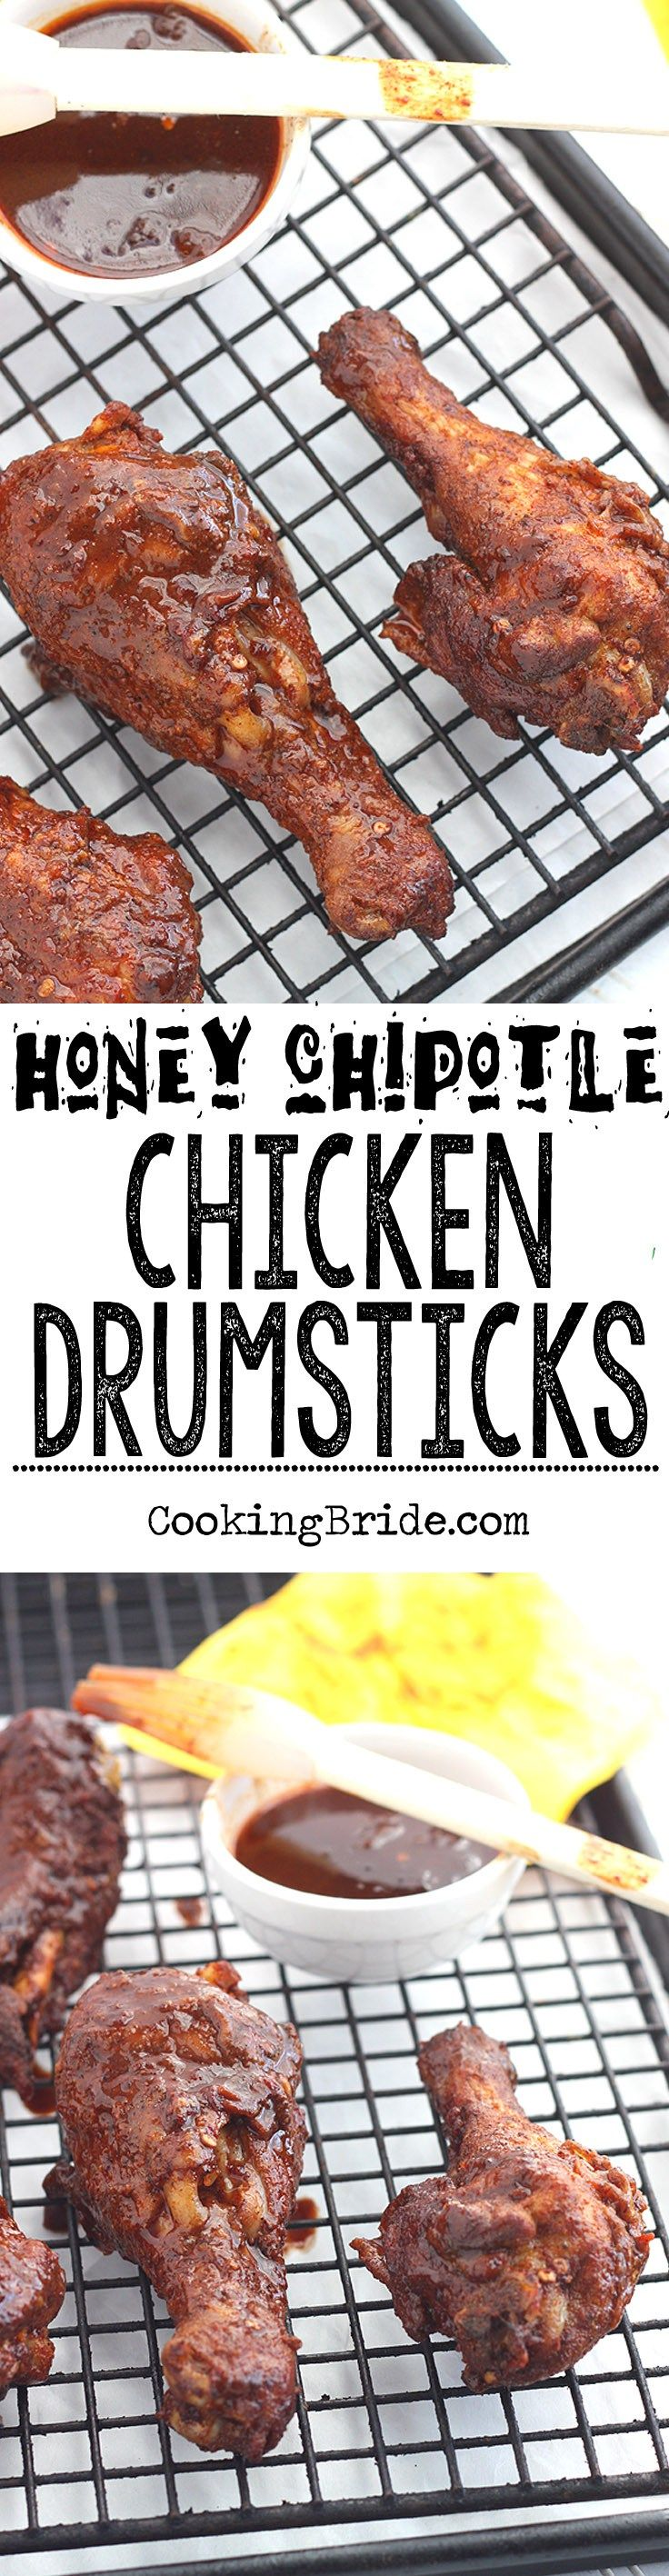 Sweet honey lends just the right amount of sweetness to smoky and spicy chipotle peppers in this recipe for honey chipotle chicken drumsticks.